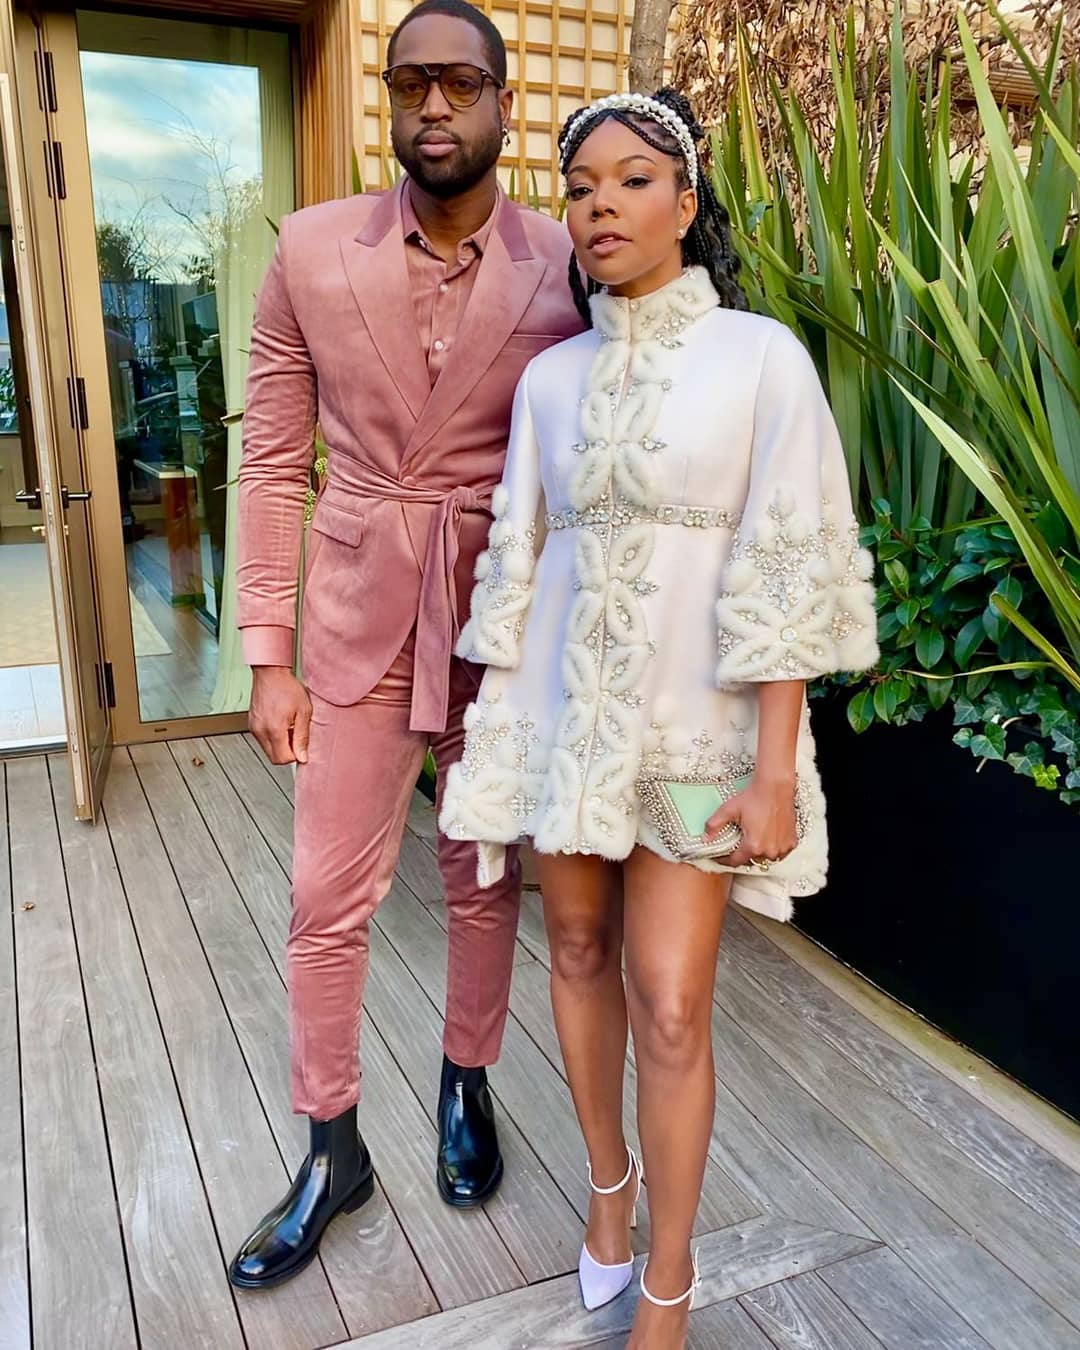 Hollywood American actress voice artist activist author Gabrielle Union attended the Ralph & Russo Paris fashion week show  husband American former professional basketball player Dwyane Wade Mae Cassidy, Botanical Mint & Silver Zeenat Clutch bag handbag ⁣Stylist Thomas Christos styled intricately detailed white couture Ralph & Russo cape dress Lilac court shoes Kenneth Soh Makeup and Hair pearl detail headband pink velvet layered look tie-waist slim-fit trouser suit shirt white socks black leather pull-on boots sunglasses. Botanical Mint Moonstone Lilac Coral Dreams Power Pink silver antique gold